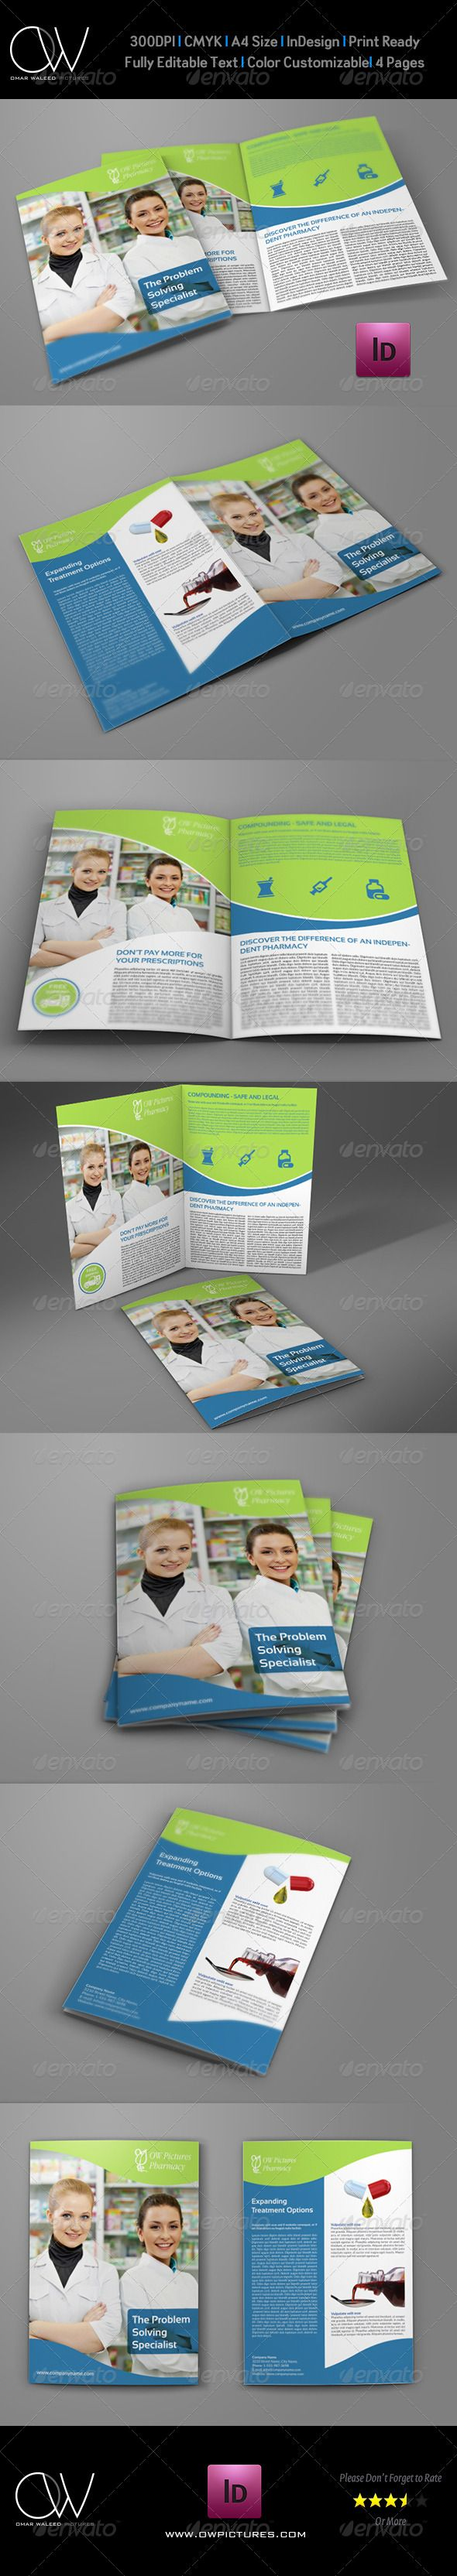 pharmacy brochure template free - 40 best top pharmacy brochure designs images on pinterest